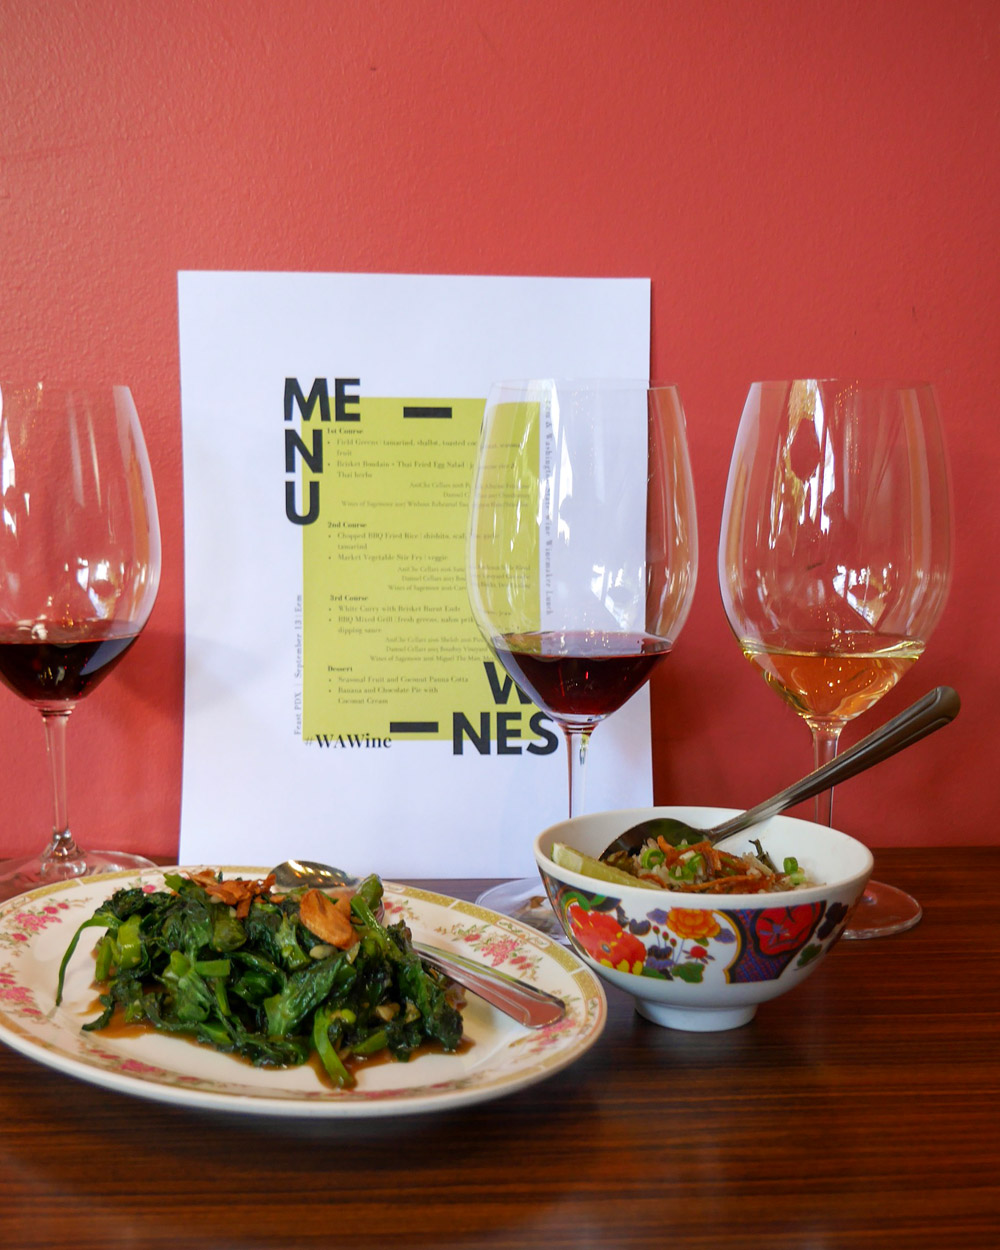 Feast 2019: Washington Winemaker Lunch at Eem, Portland